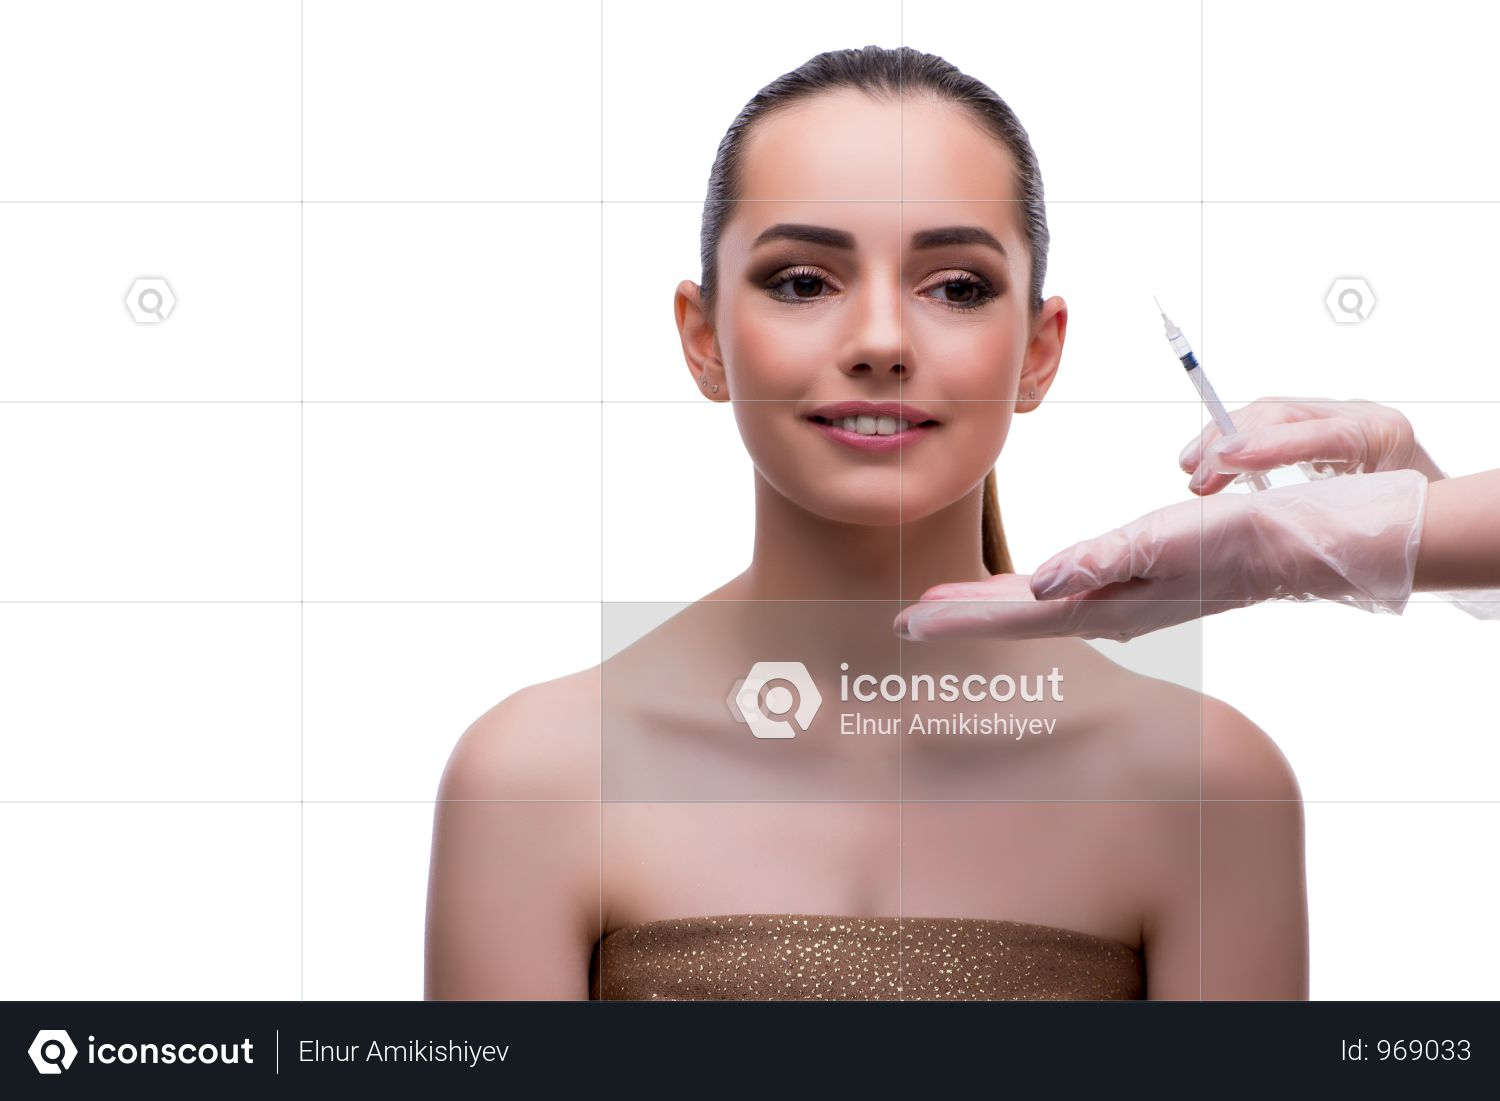 Woman In Beauty Concept Having Botex Facelift Photo